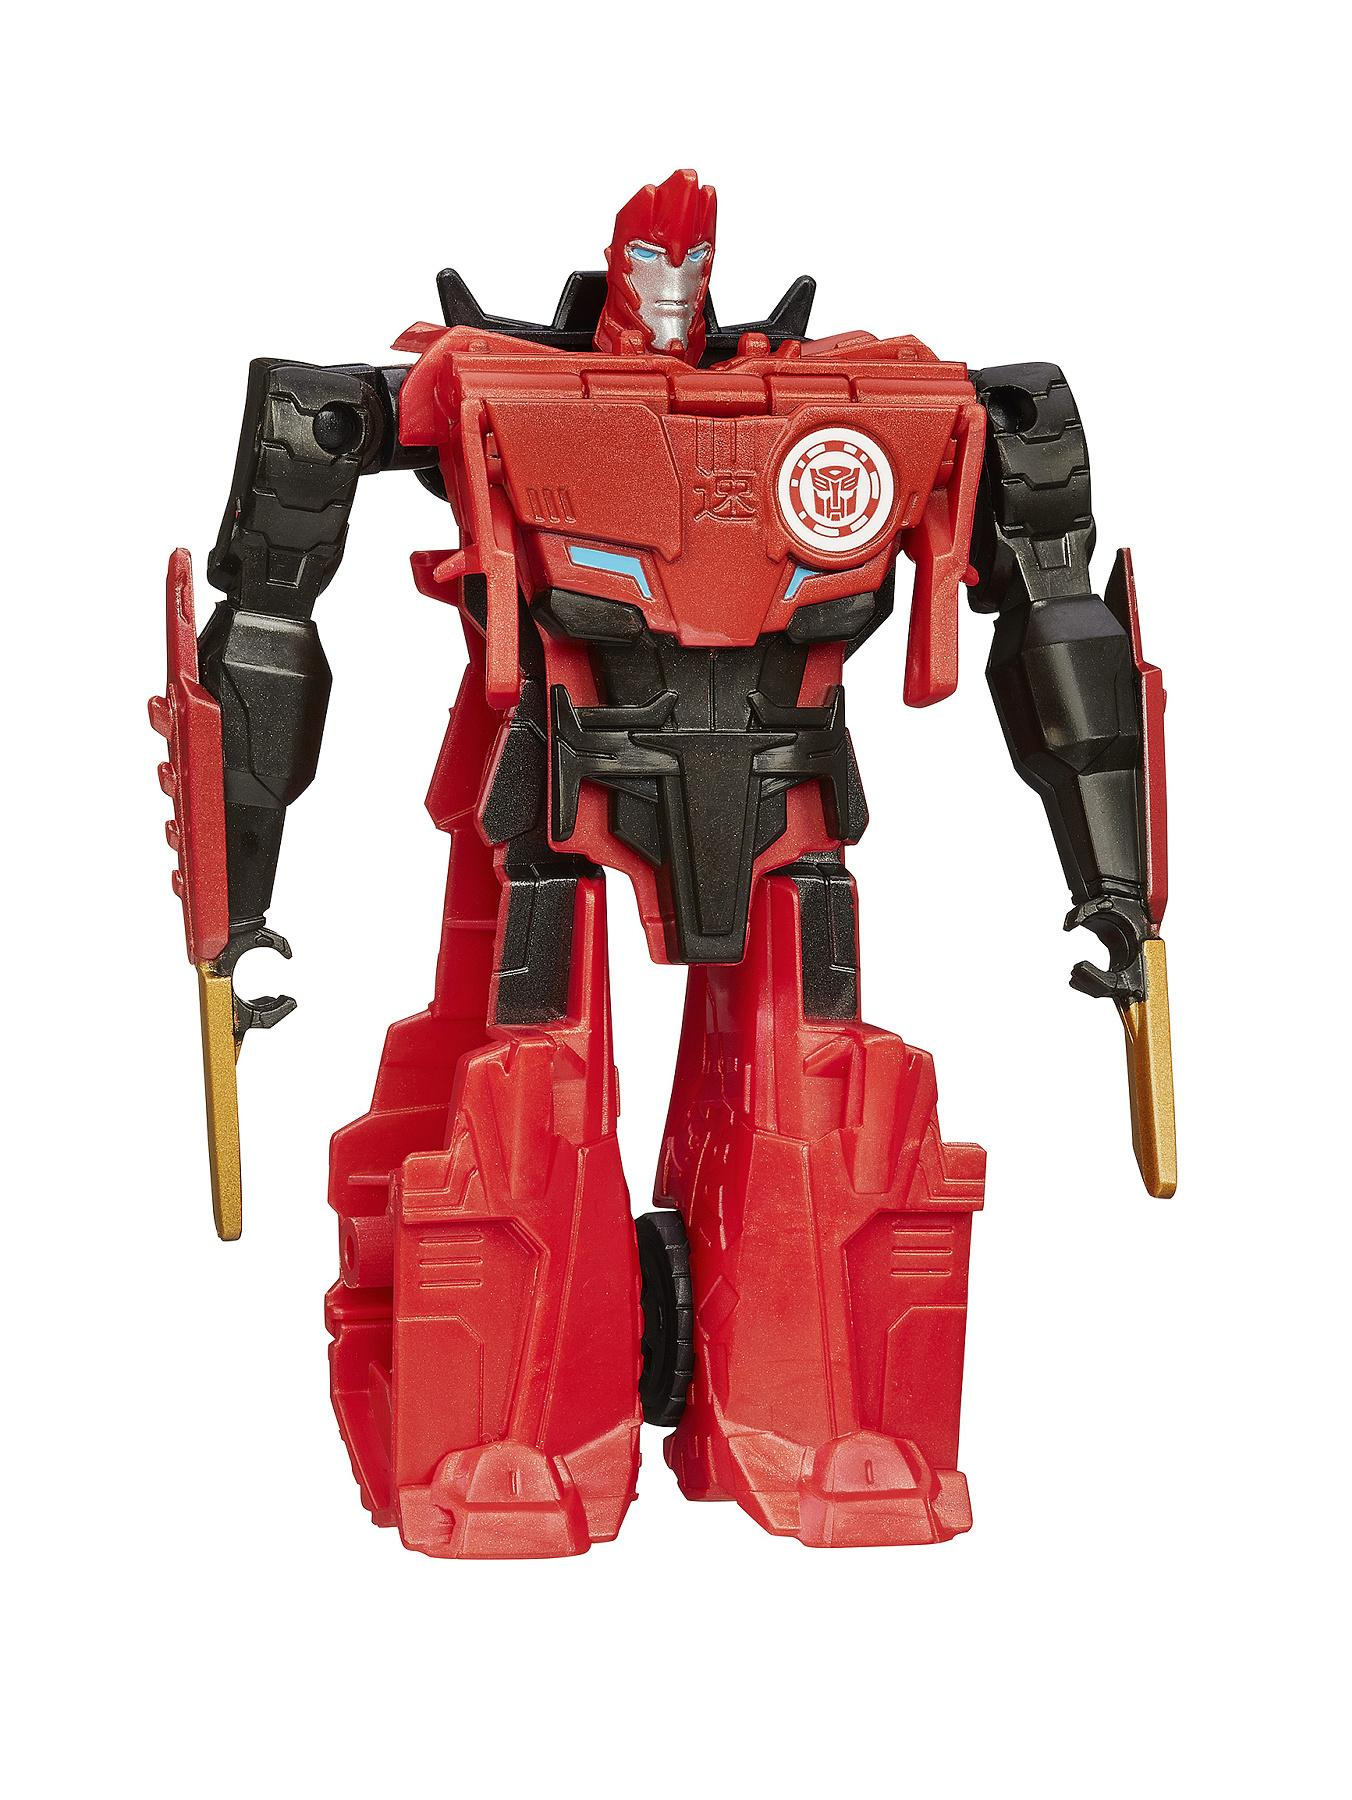 Transformers Robots in Disguise One Step Changers - Sideswipe